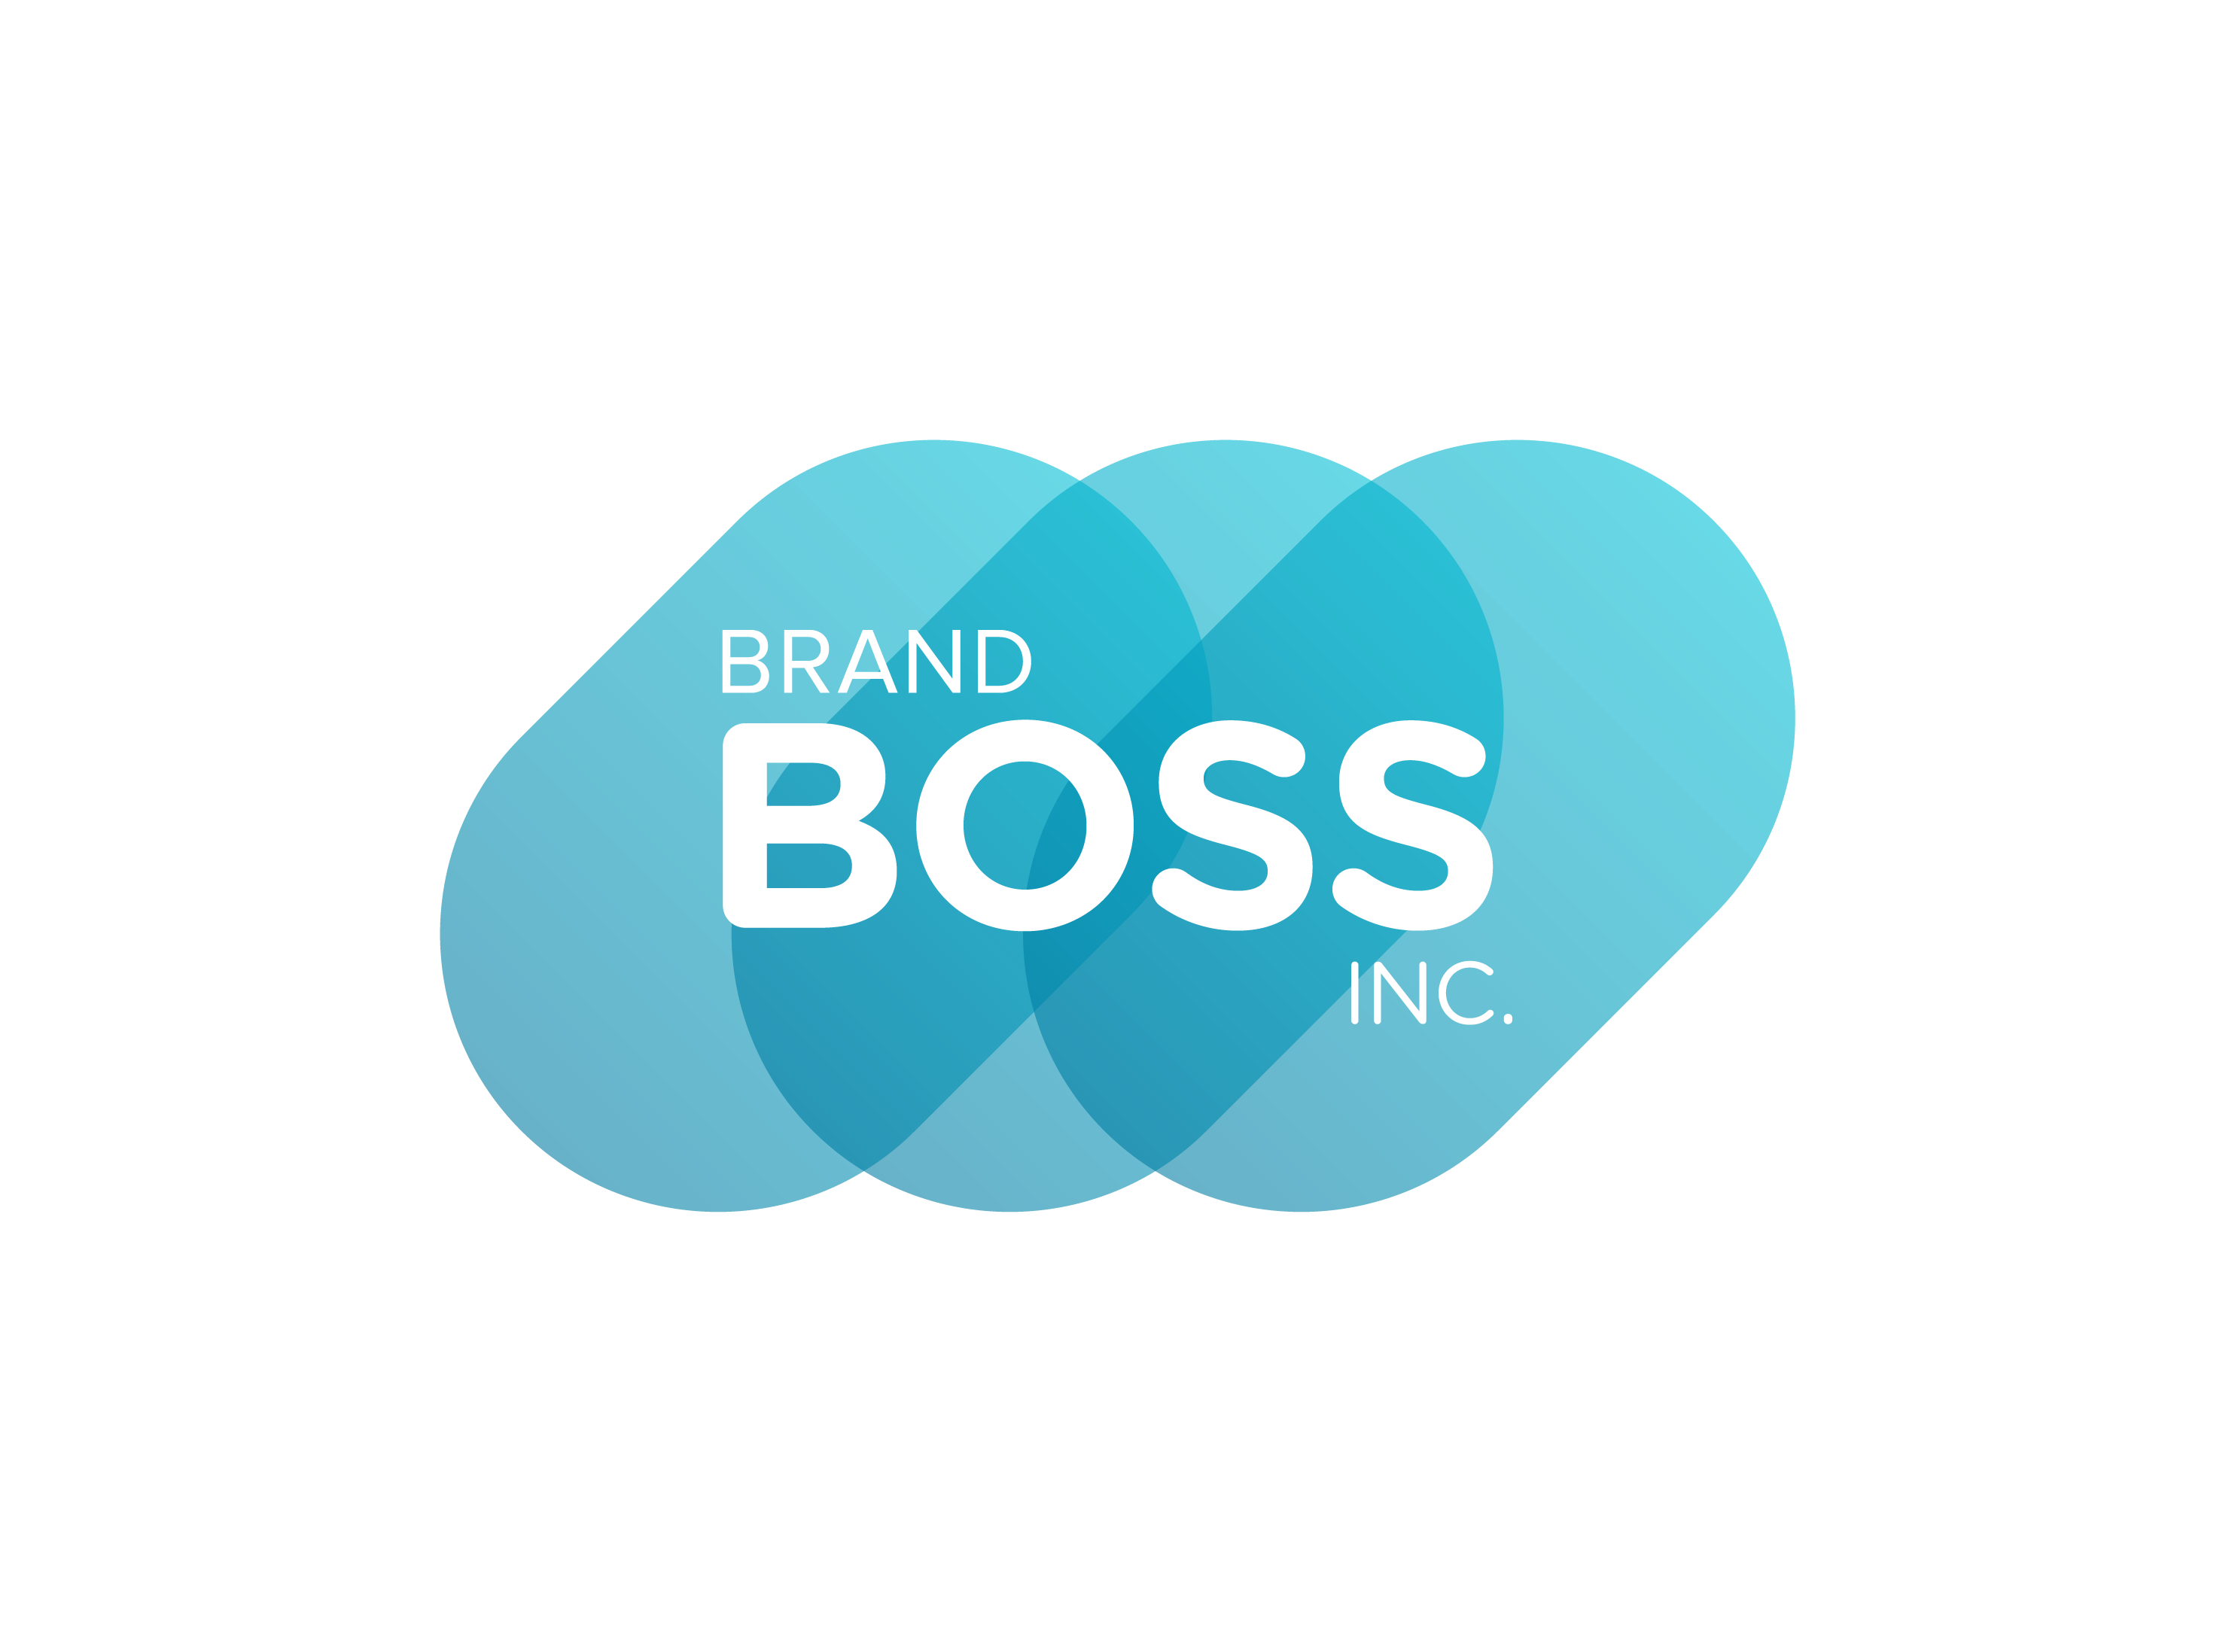 Brand Boss Communications Group Inc.